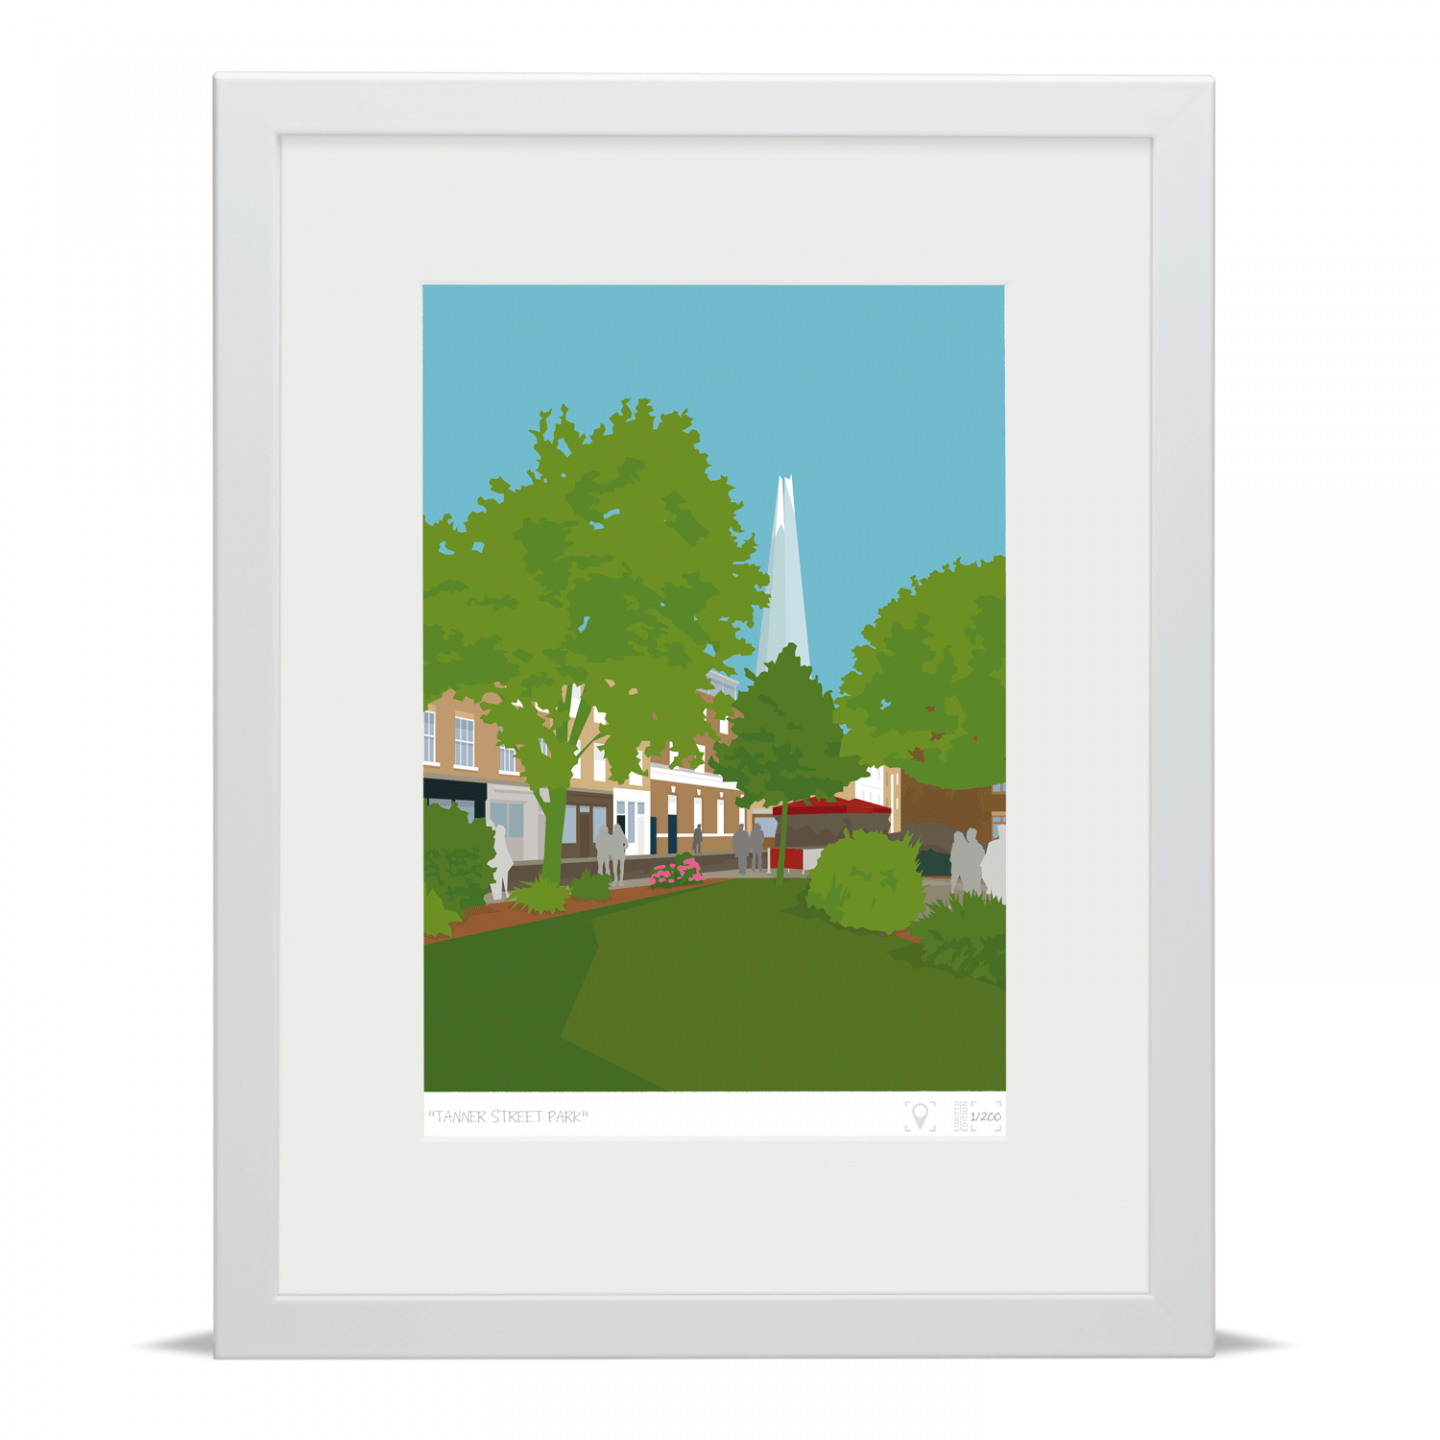 Place in Print Tanner Street Park Limited Edition Art Print White Frame